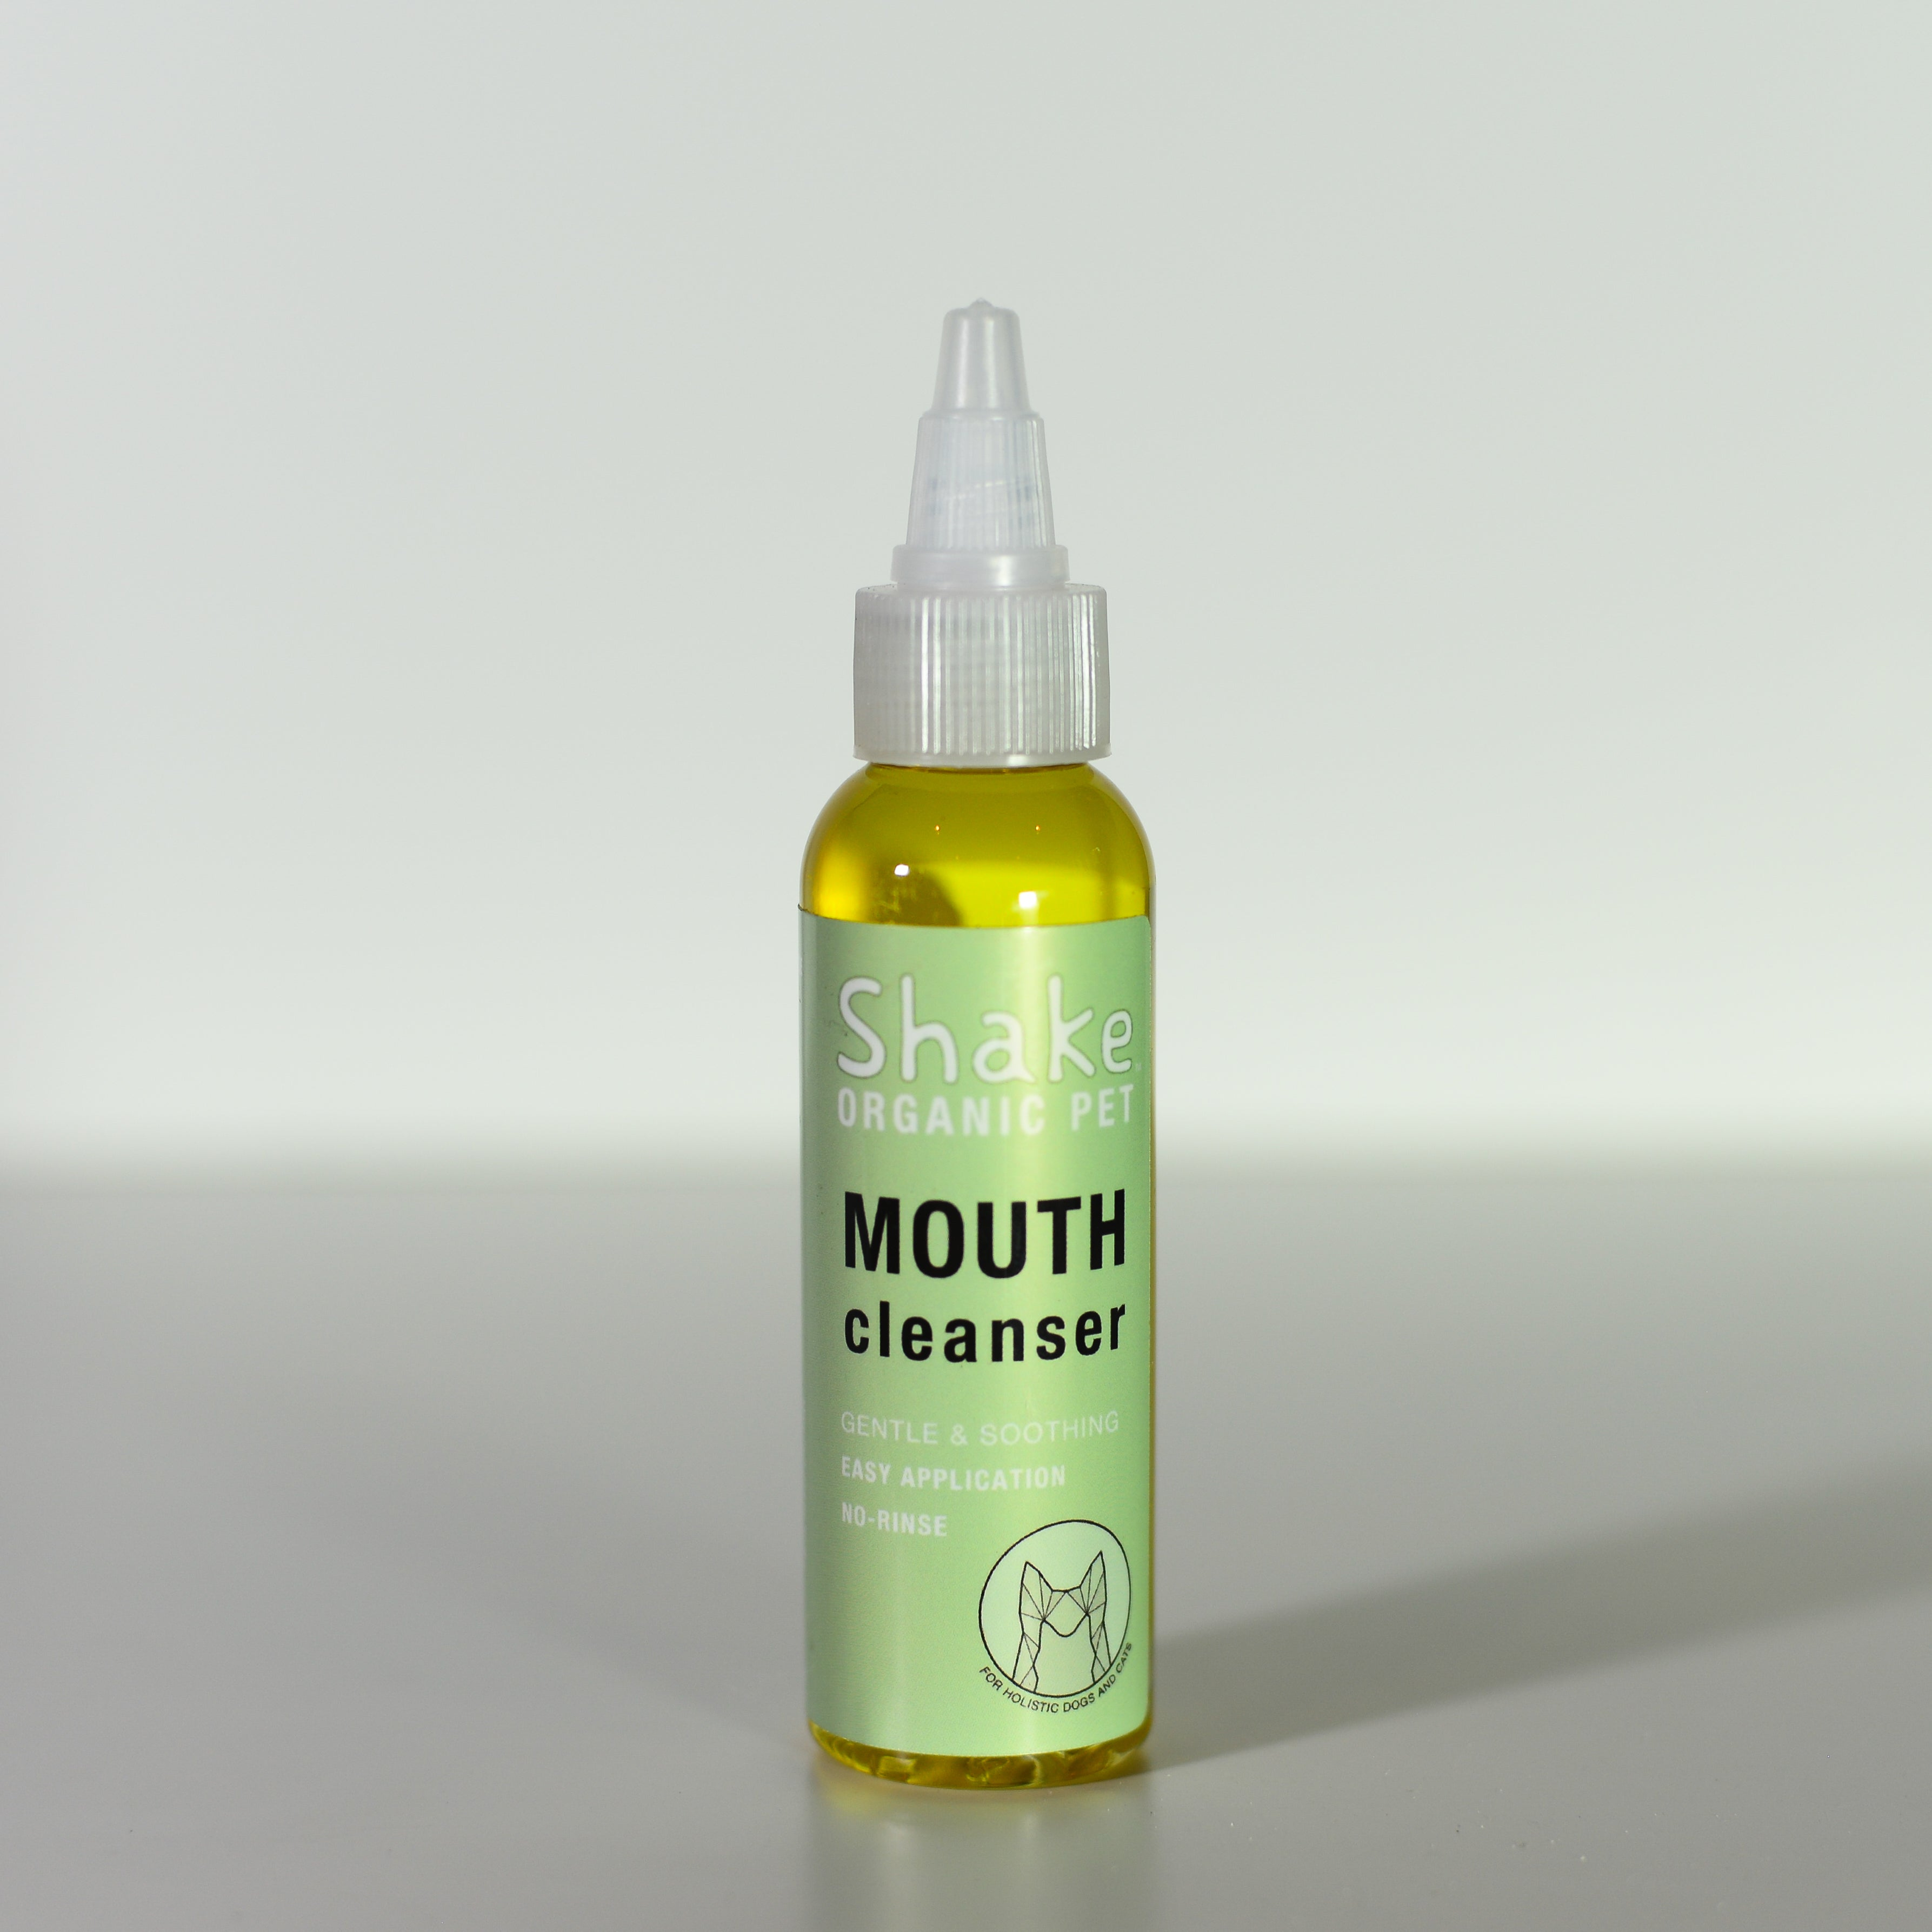 Mouth Cleanser